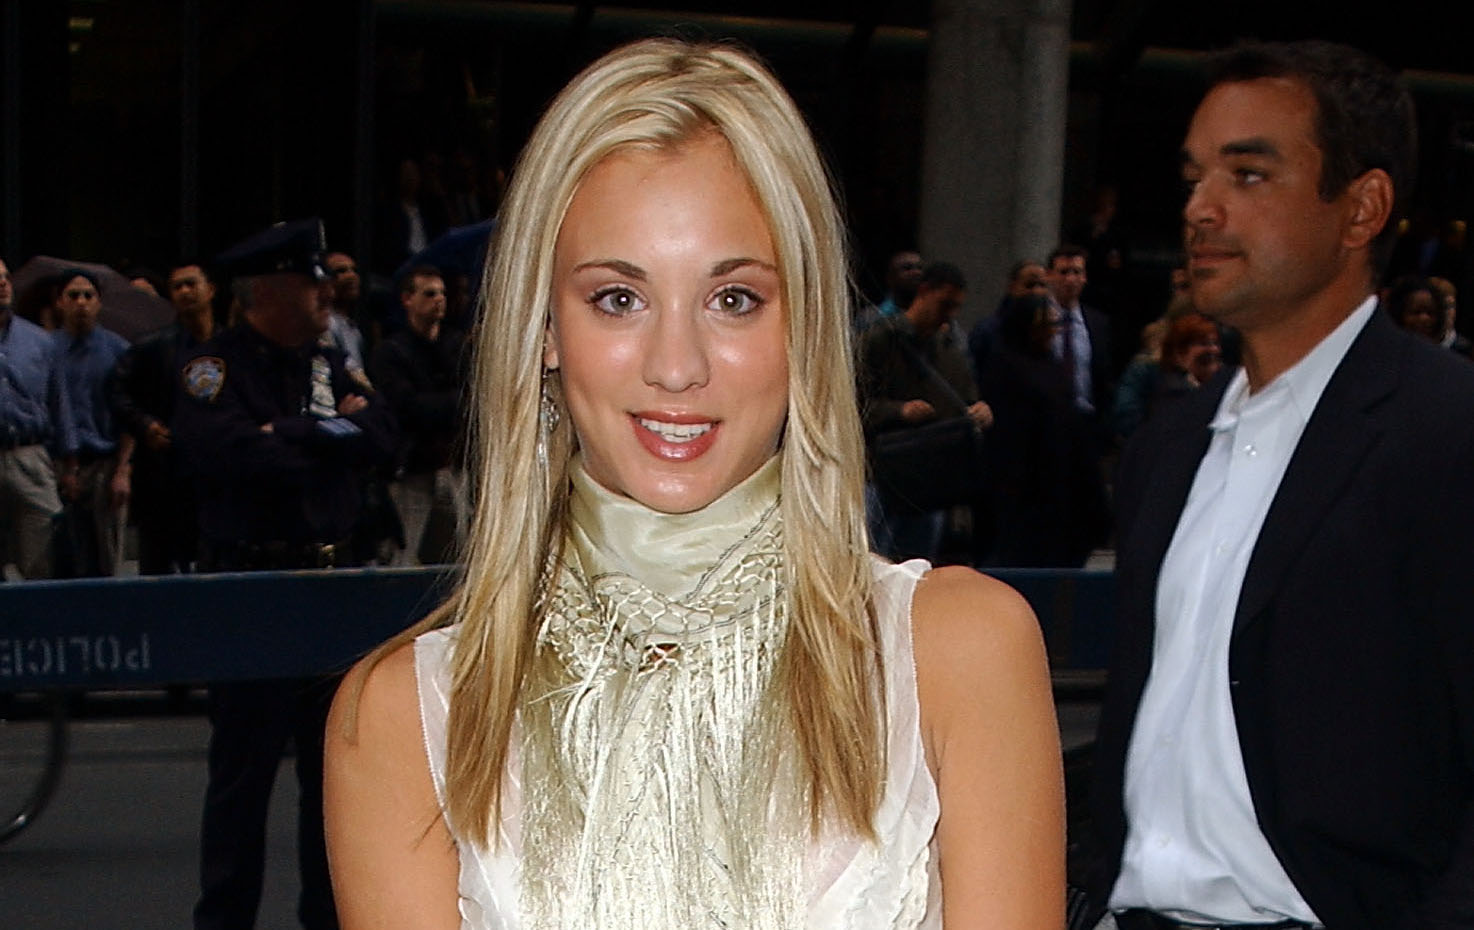 This 2002 image of Kaley Cuoco is giving us all the #tbt vibes